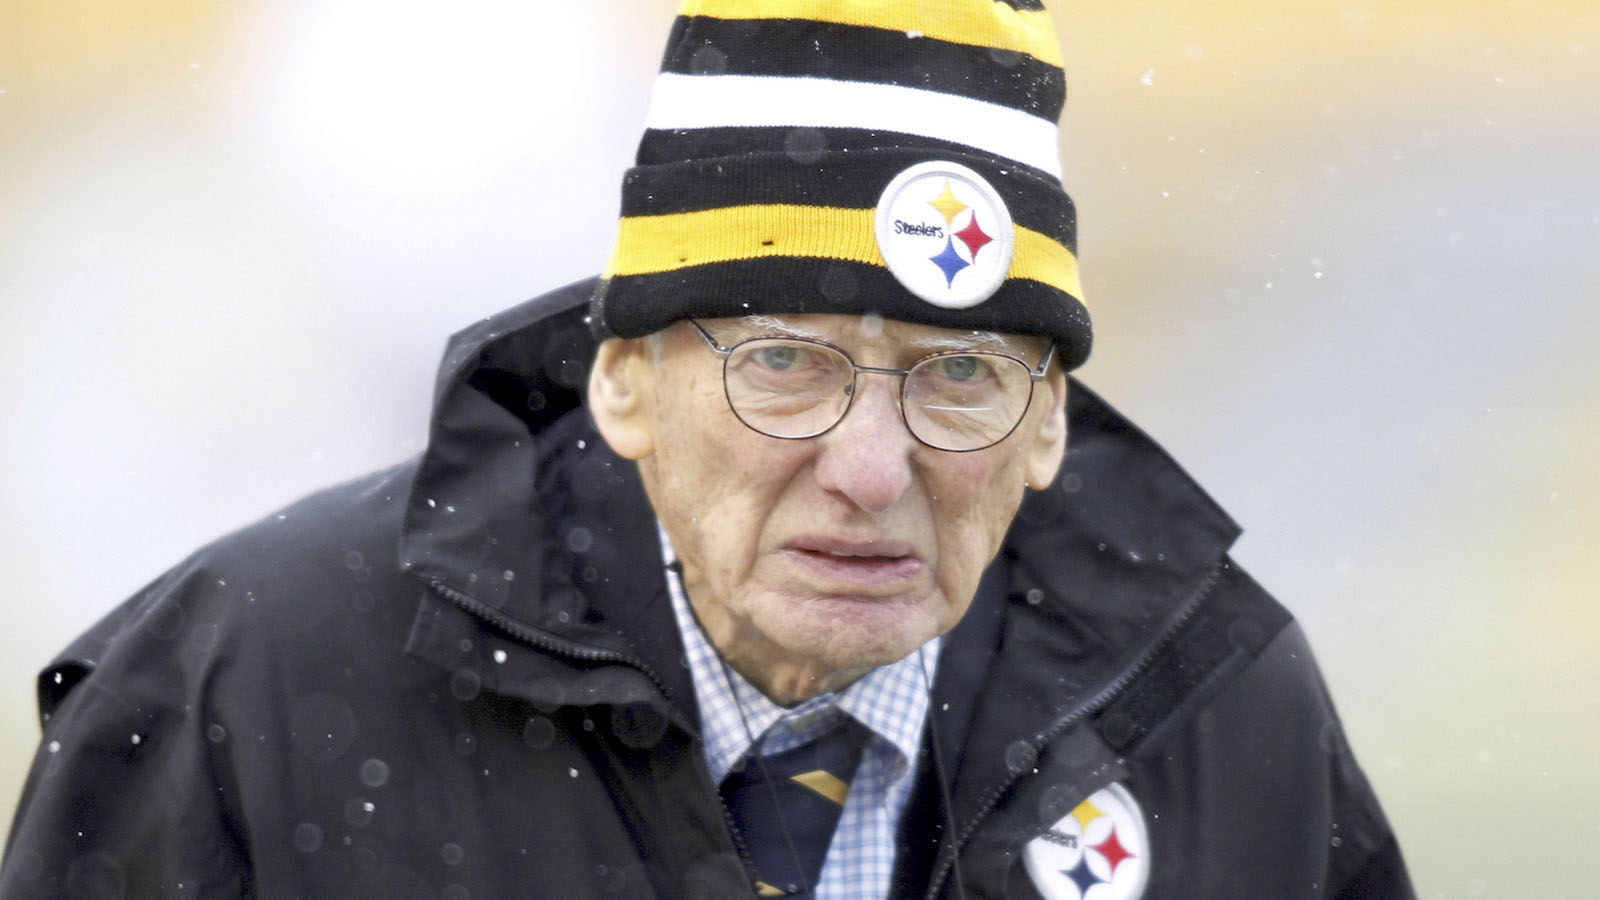 Dec 8, 2013; Pittsburgh, PA, USA; Pittsburgh Steelers chairman emeritus Dan Rooney on the field before the Steelers play the Miami Dolphins at Heinz Field. Mandatory Credit: Charles LeClaire-USA TODAY Sports